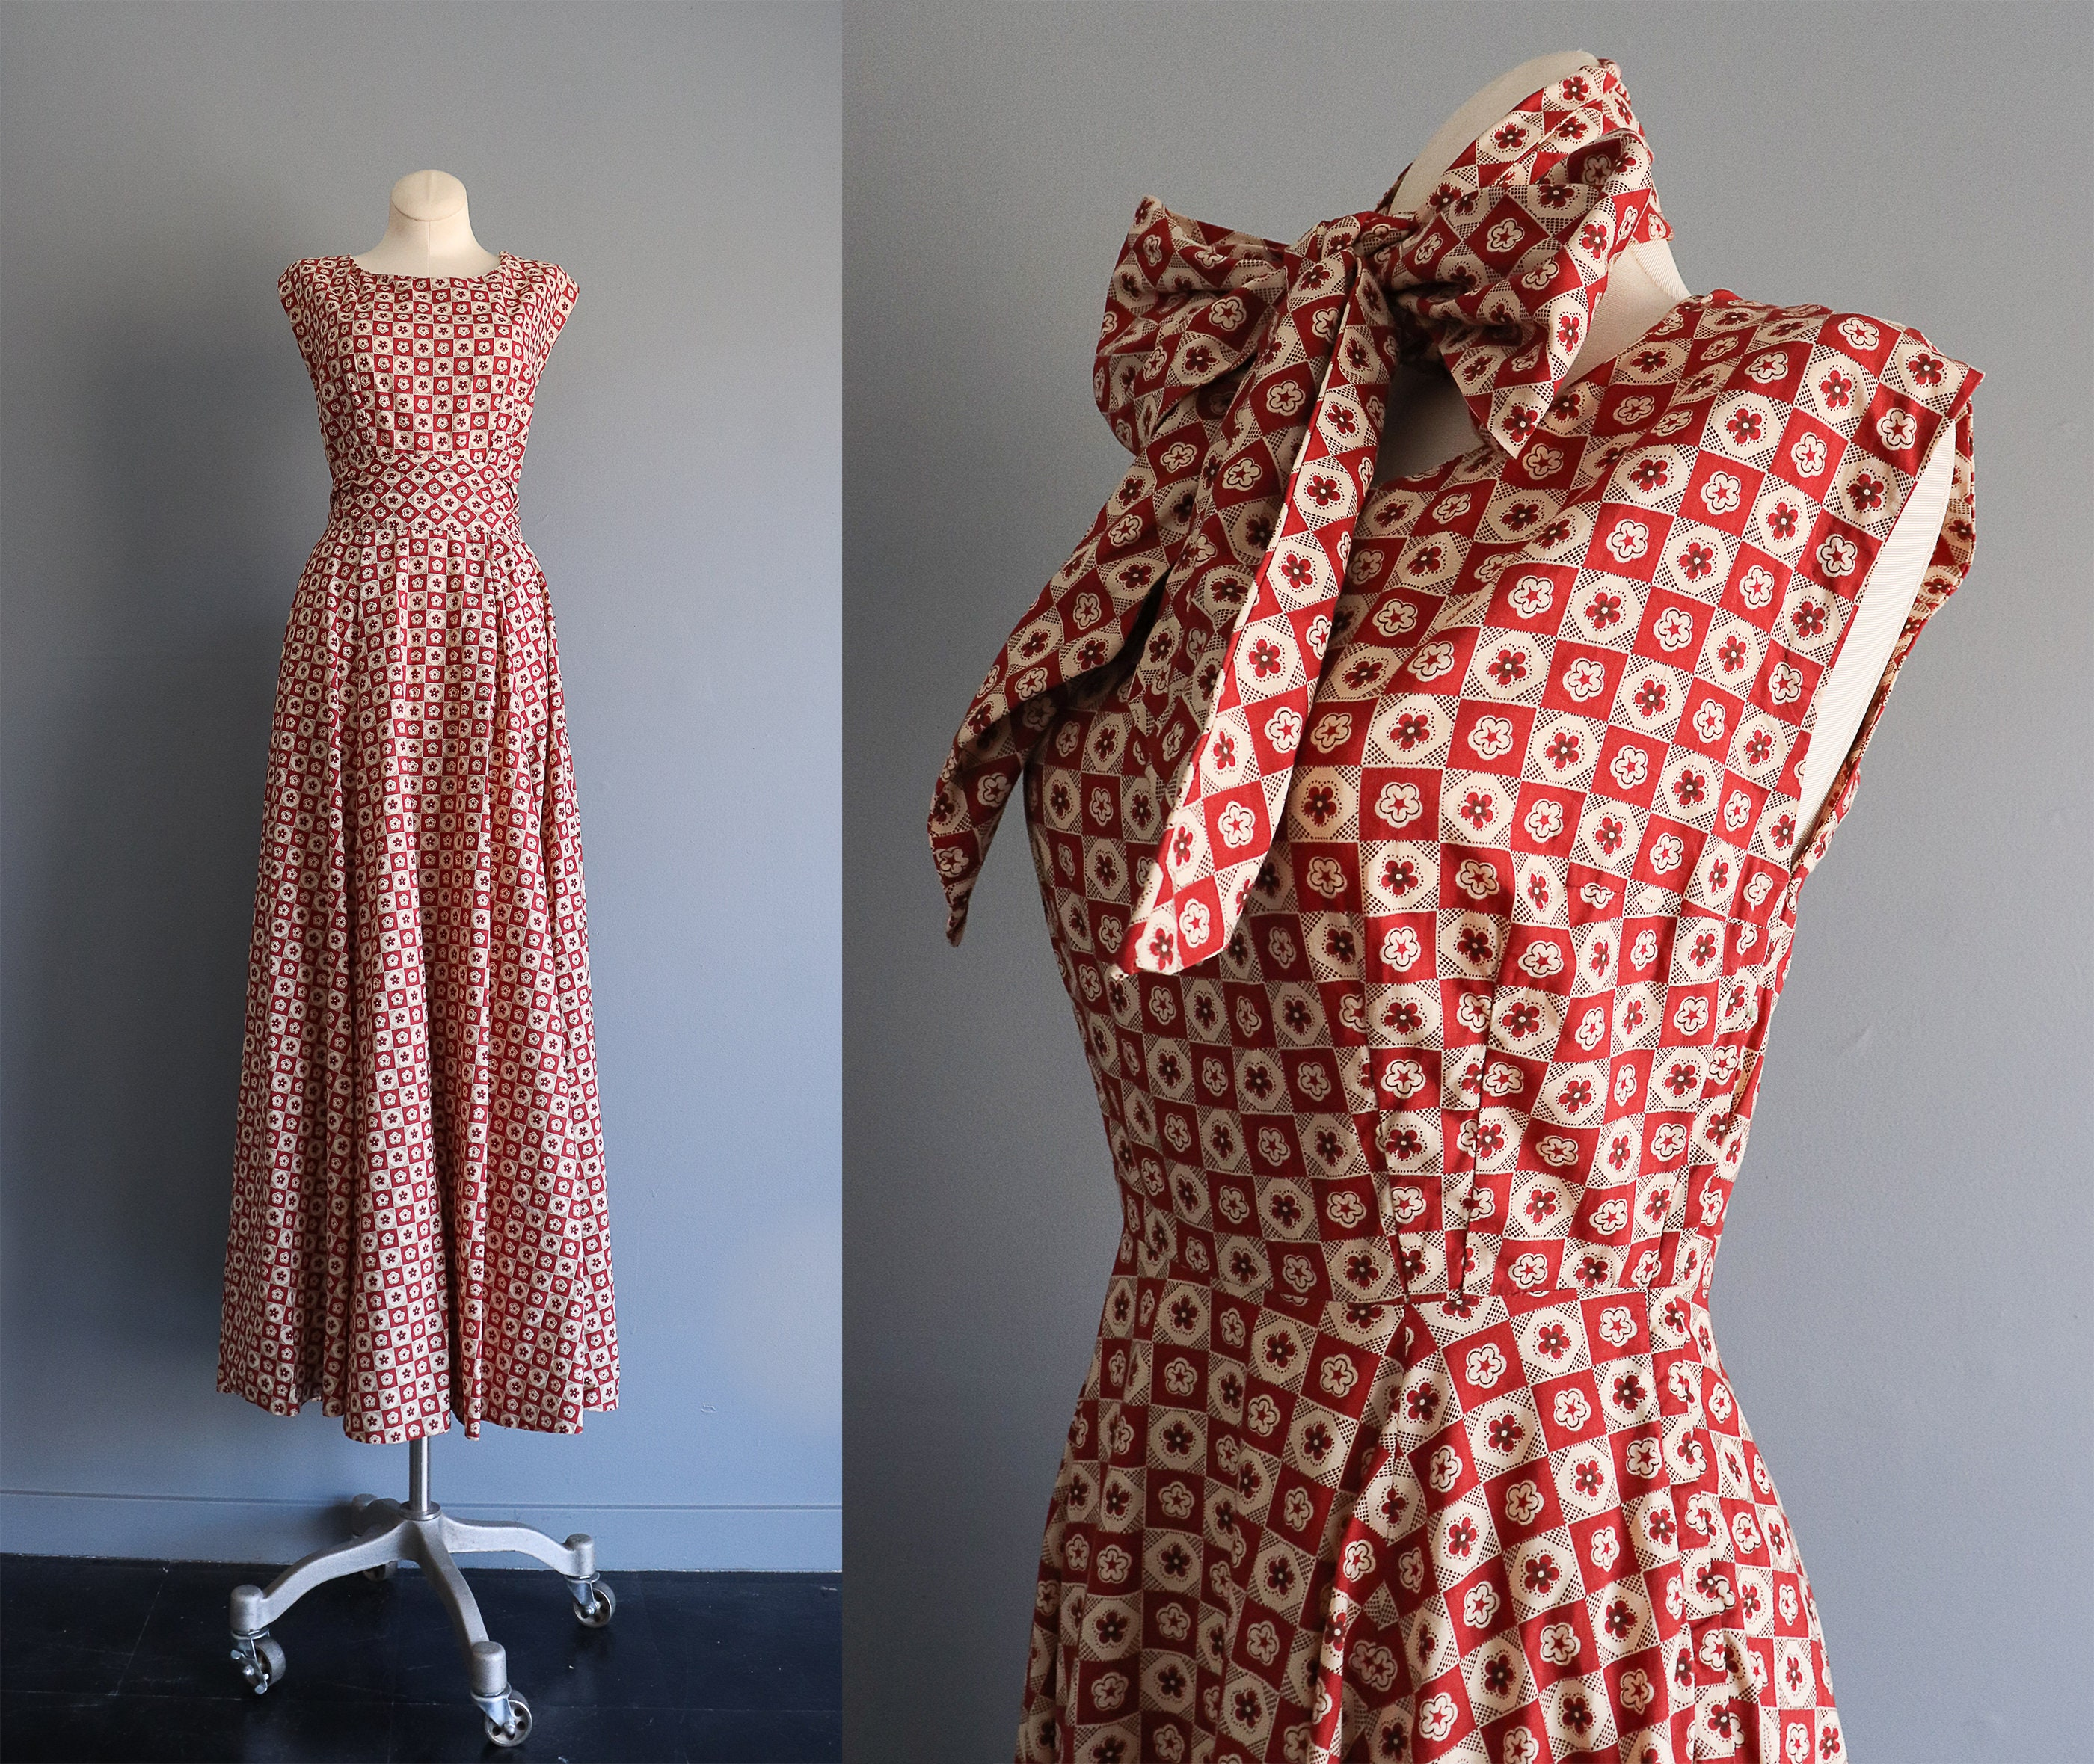 Vintage Scarf Styles -1920s to 1960s 1950S Vintage Brick Red  White Floral Checker Patterned Cotton Maxi Dress With Full Skirt50S Swing Dance Party Size Xs Small $0.00 AT vintagedancer.com